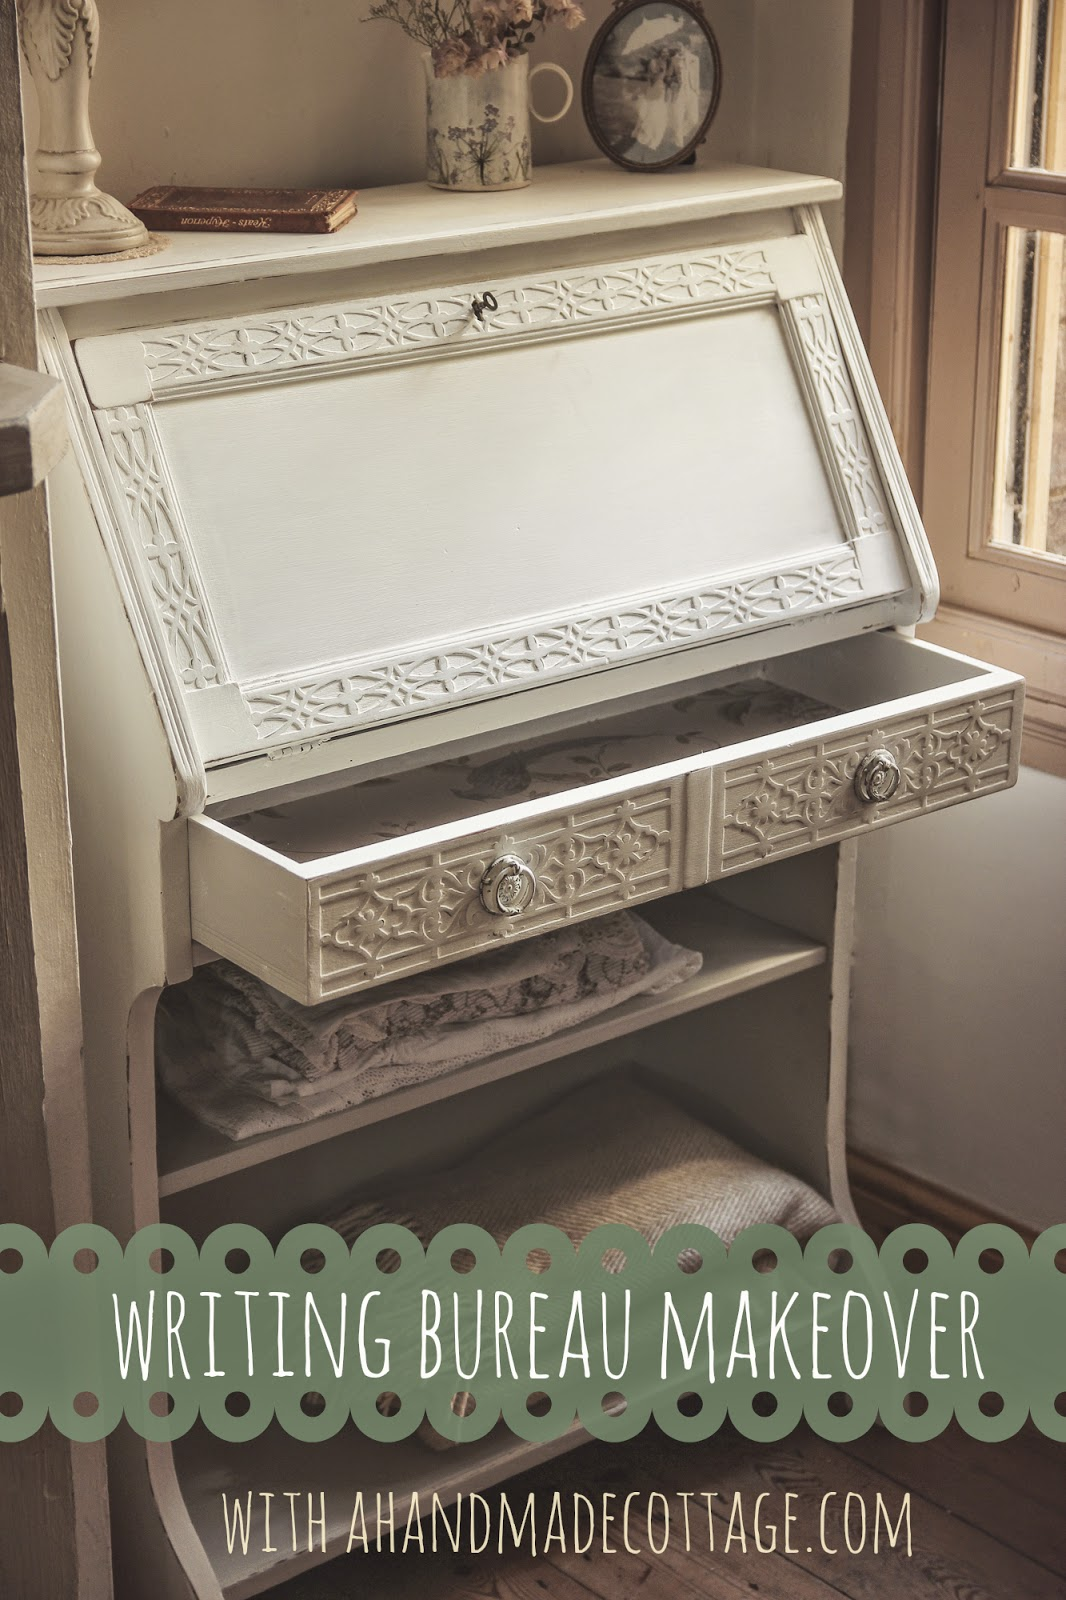 a handmade cottage weekend diy project writing bureau makeover as featured on the laura. Black Bedroom Furniture Sets. Home Design Ideas